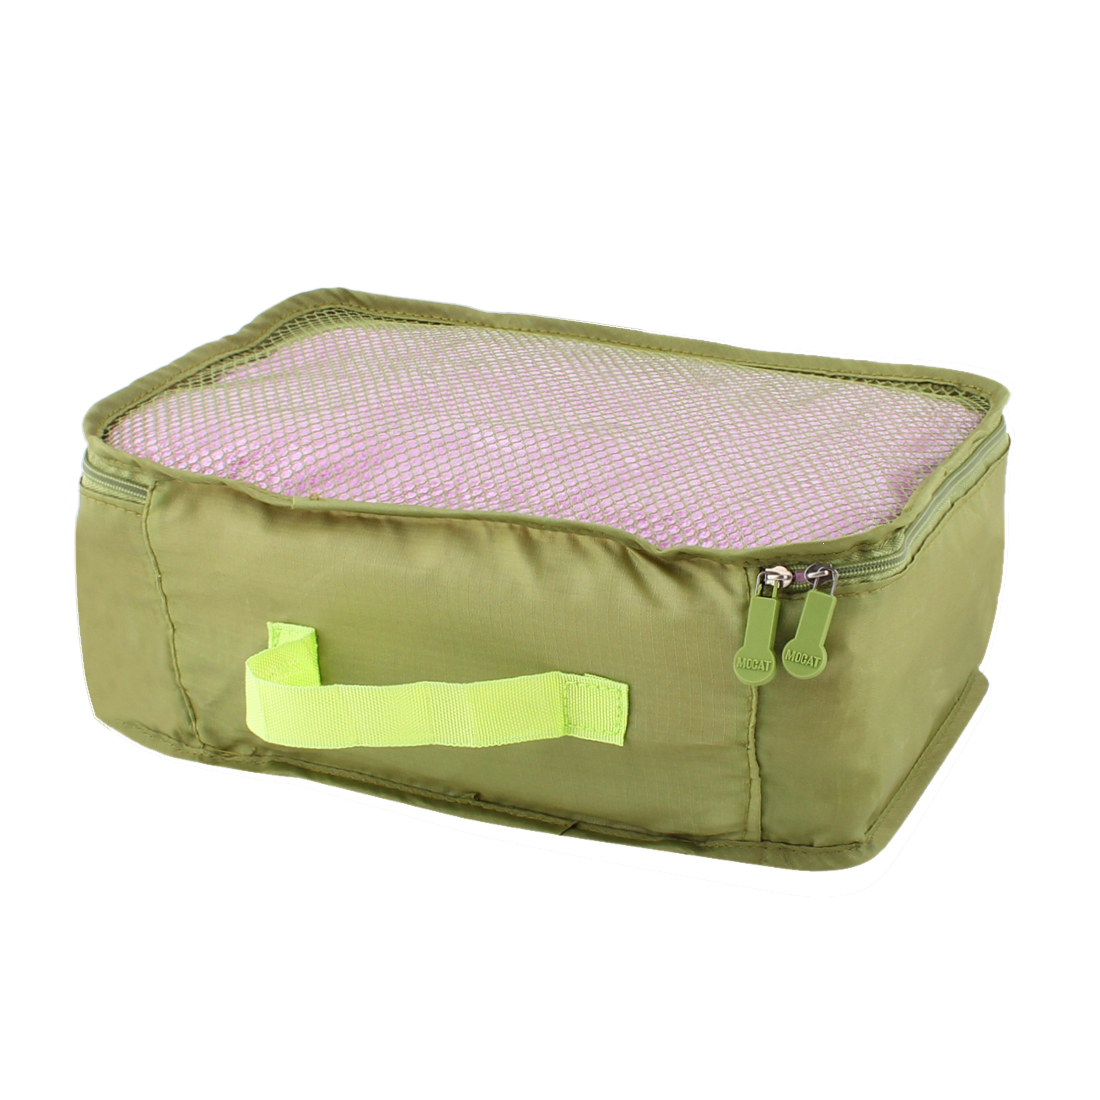 Green Portable Folding Underwear Bra Sock Clothes Organizer Storage Pouch Bag Handbag 27cm x 18cm x 12cm